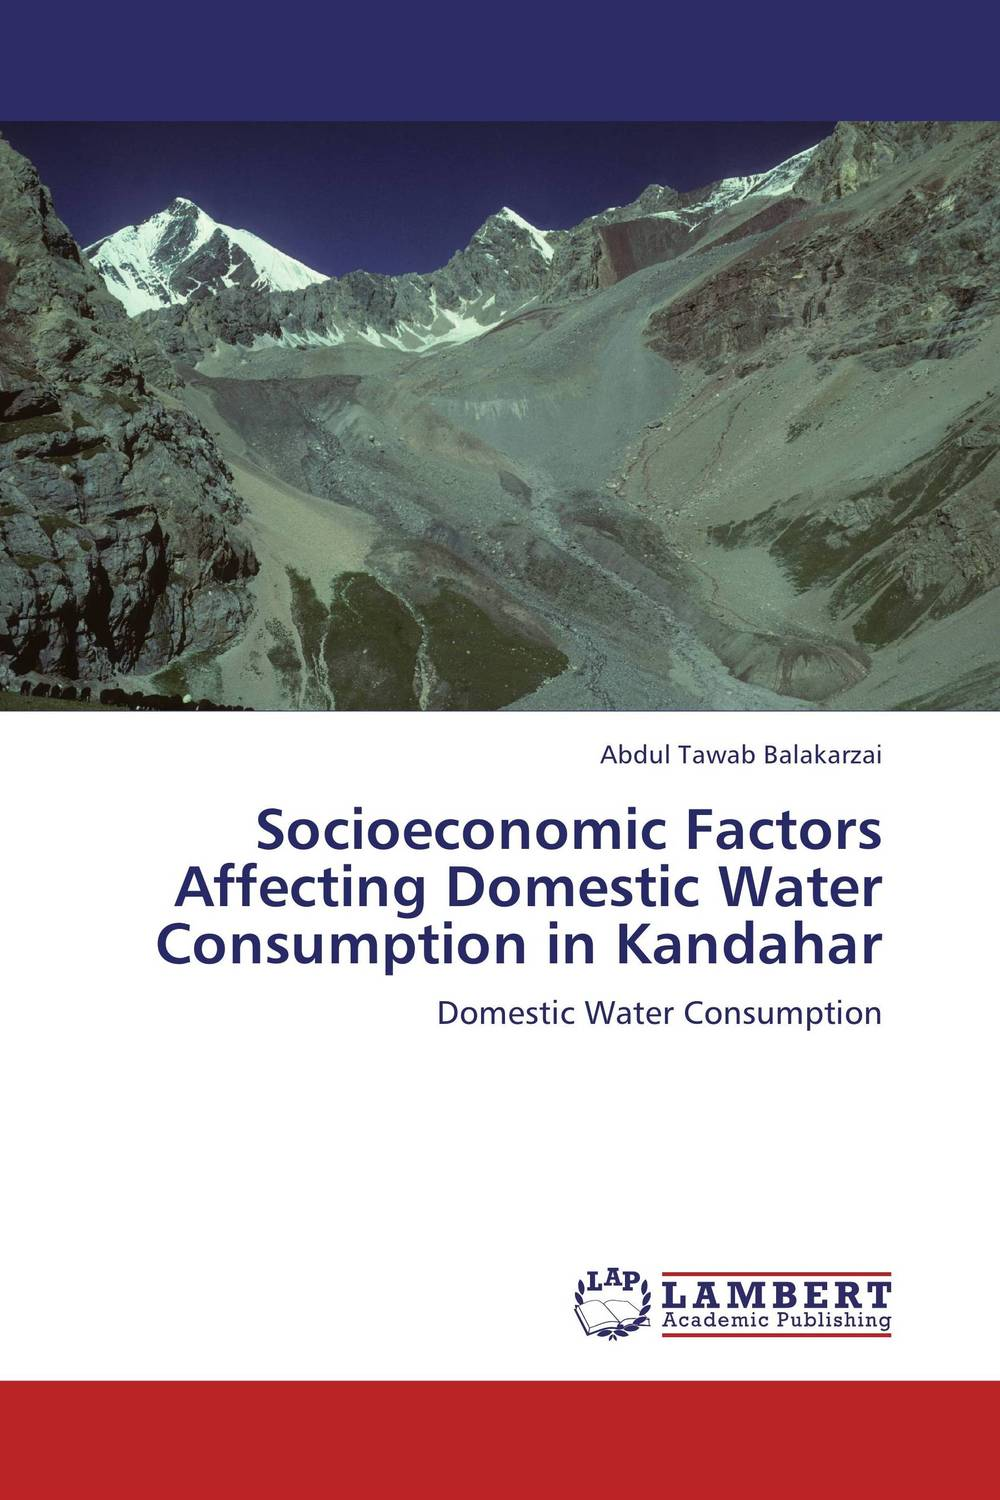 Socioeconomic Factors Affecting Domestic Water Consumption in Kandahar bride of the water god v 3